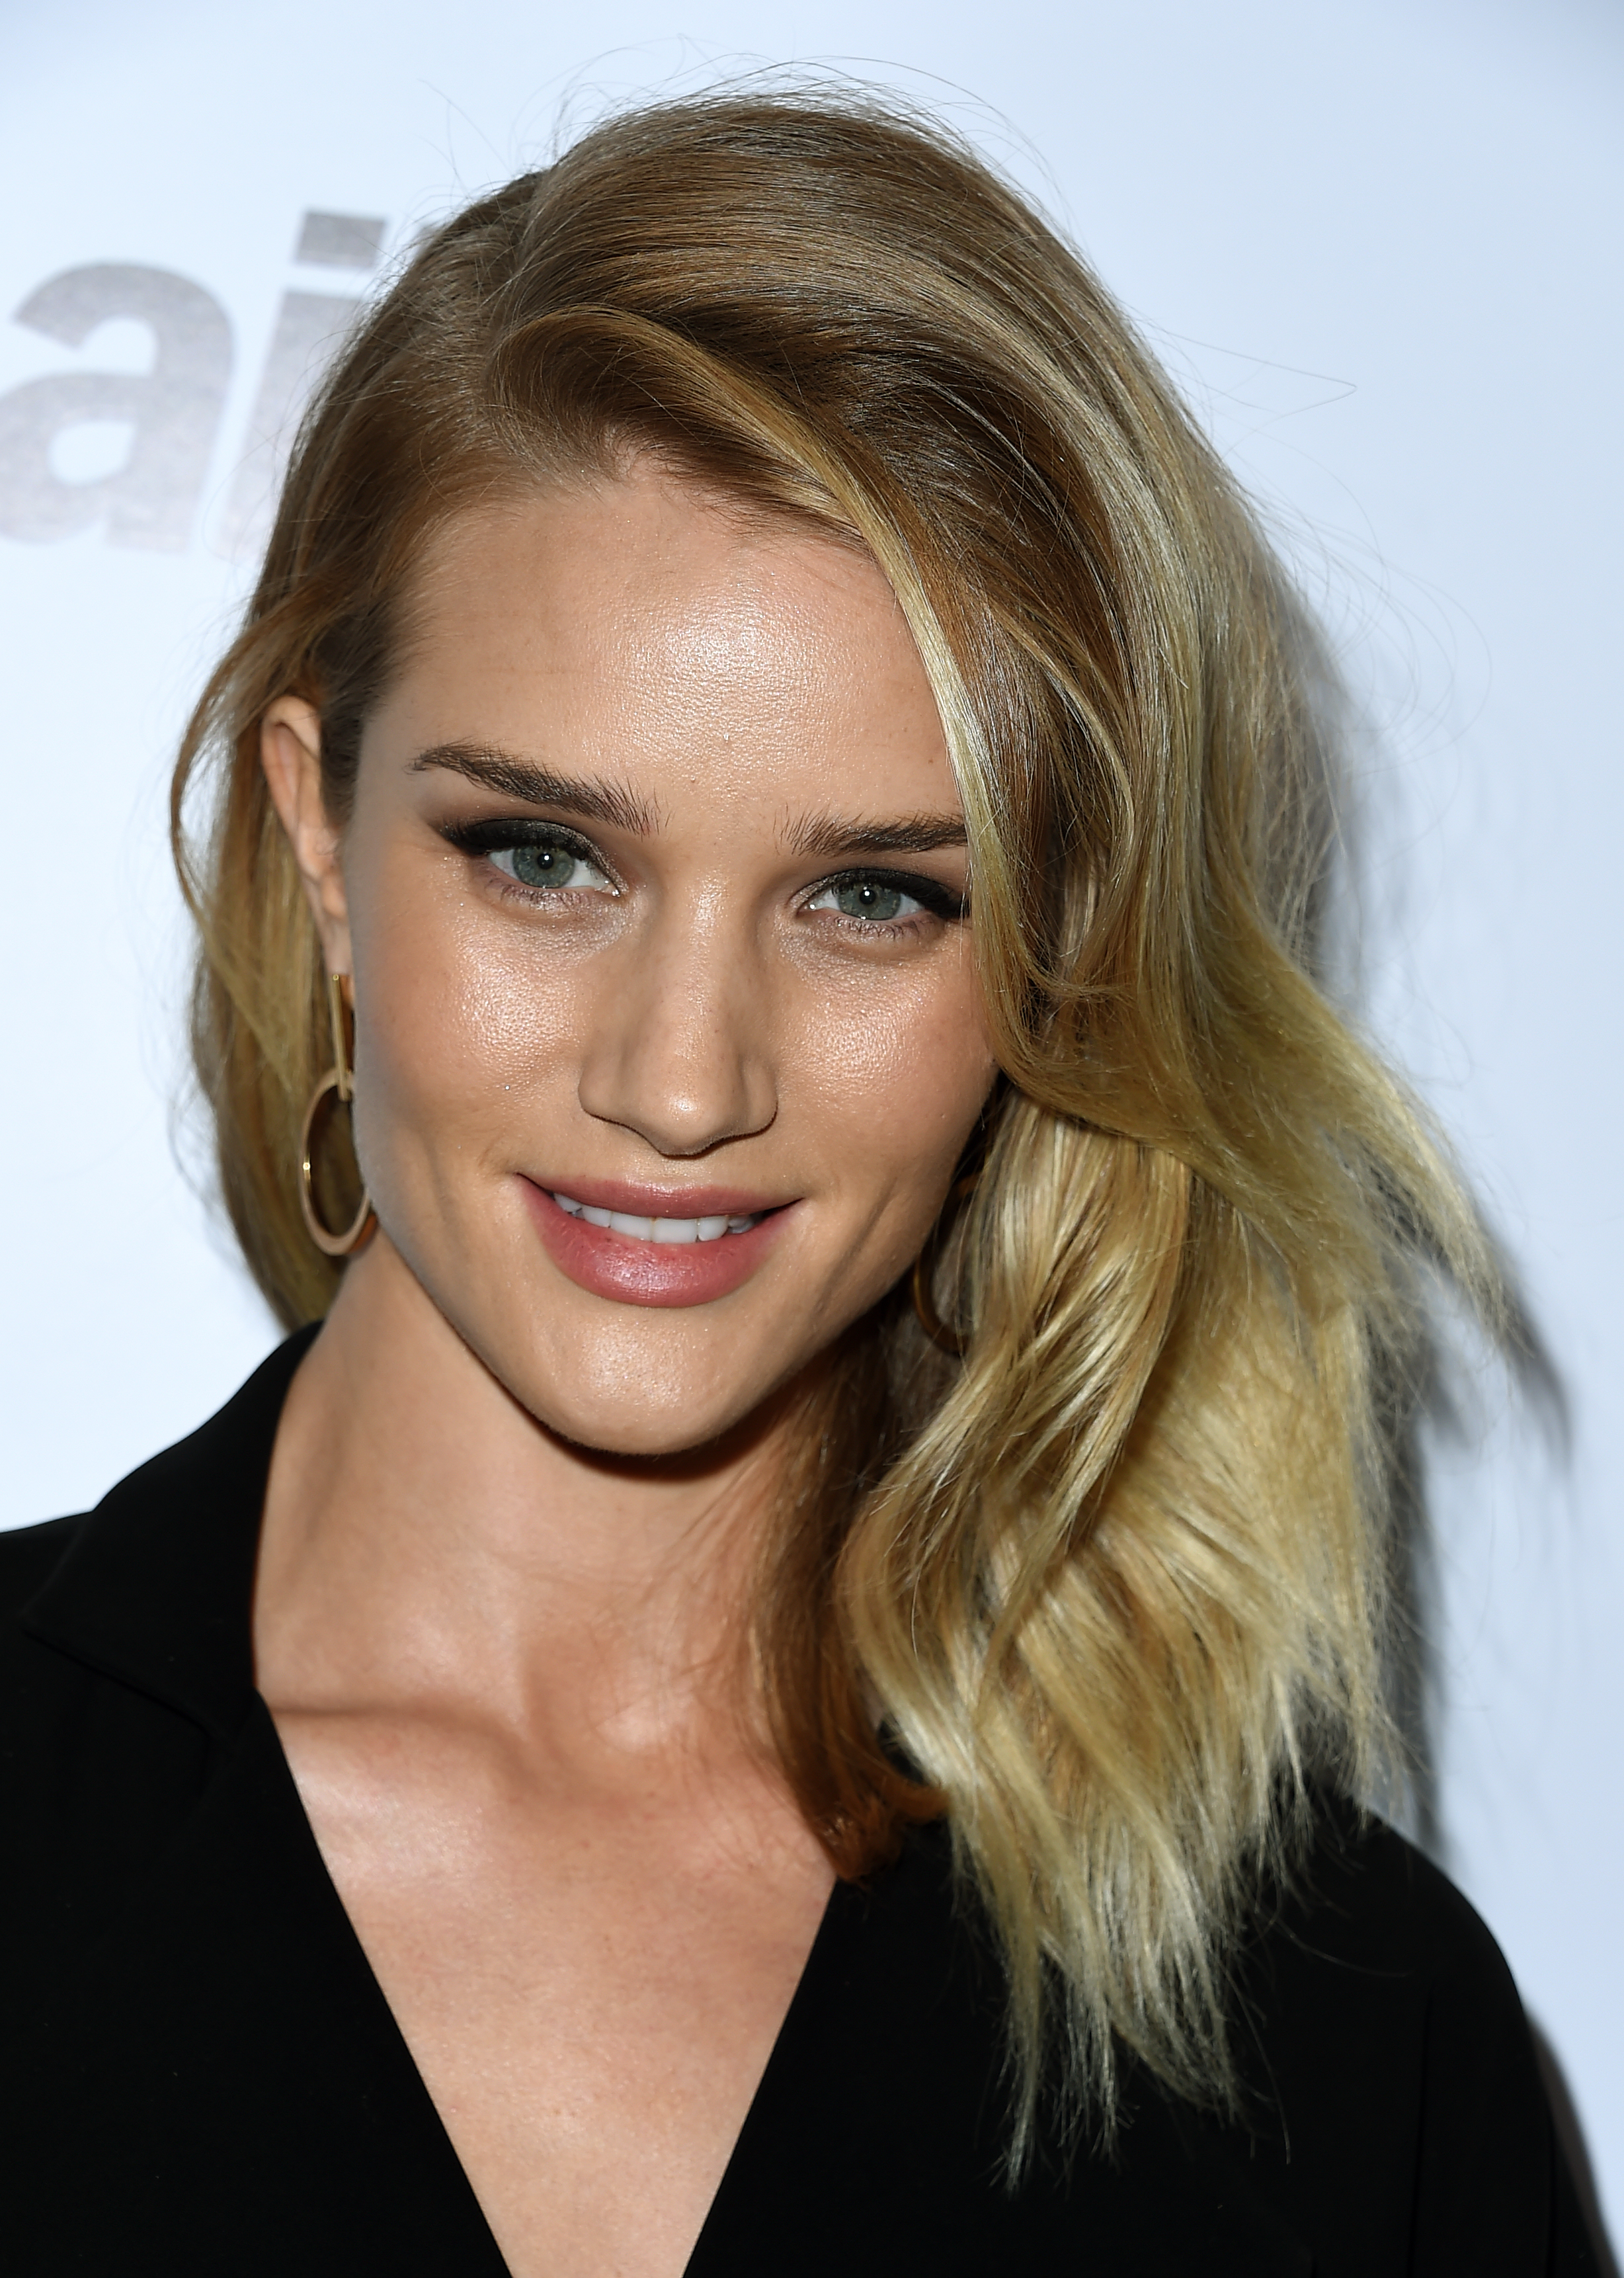 best long haircuts for square faces the 10 best hairstyles for square faces 3392 | 1471033124 gettyimages 516776142